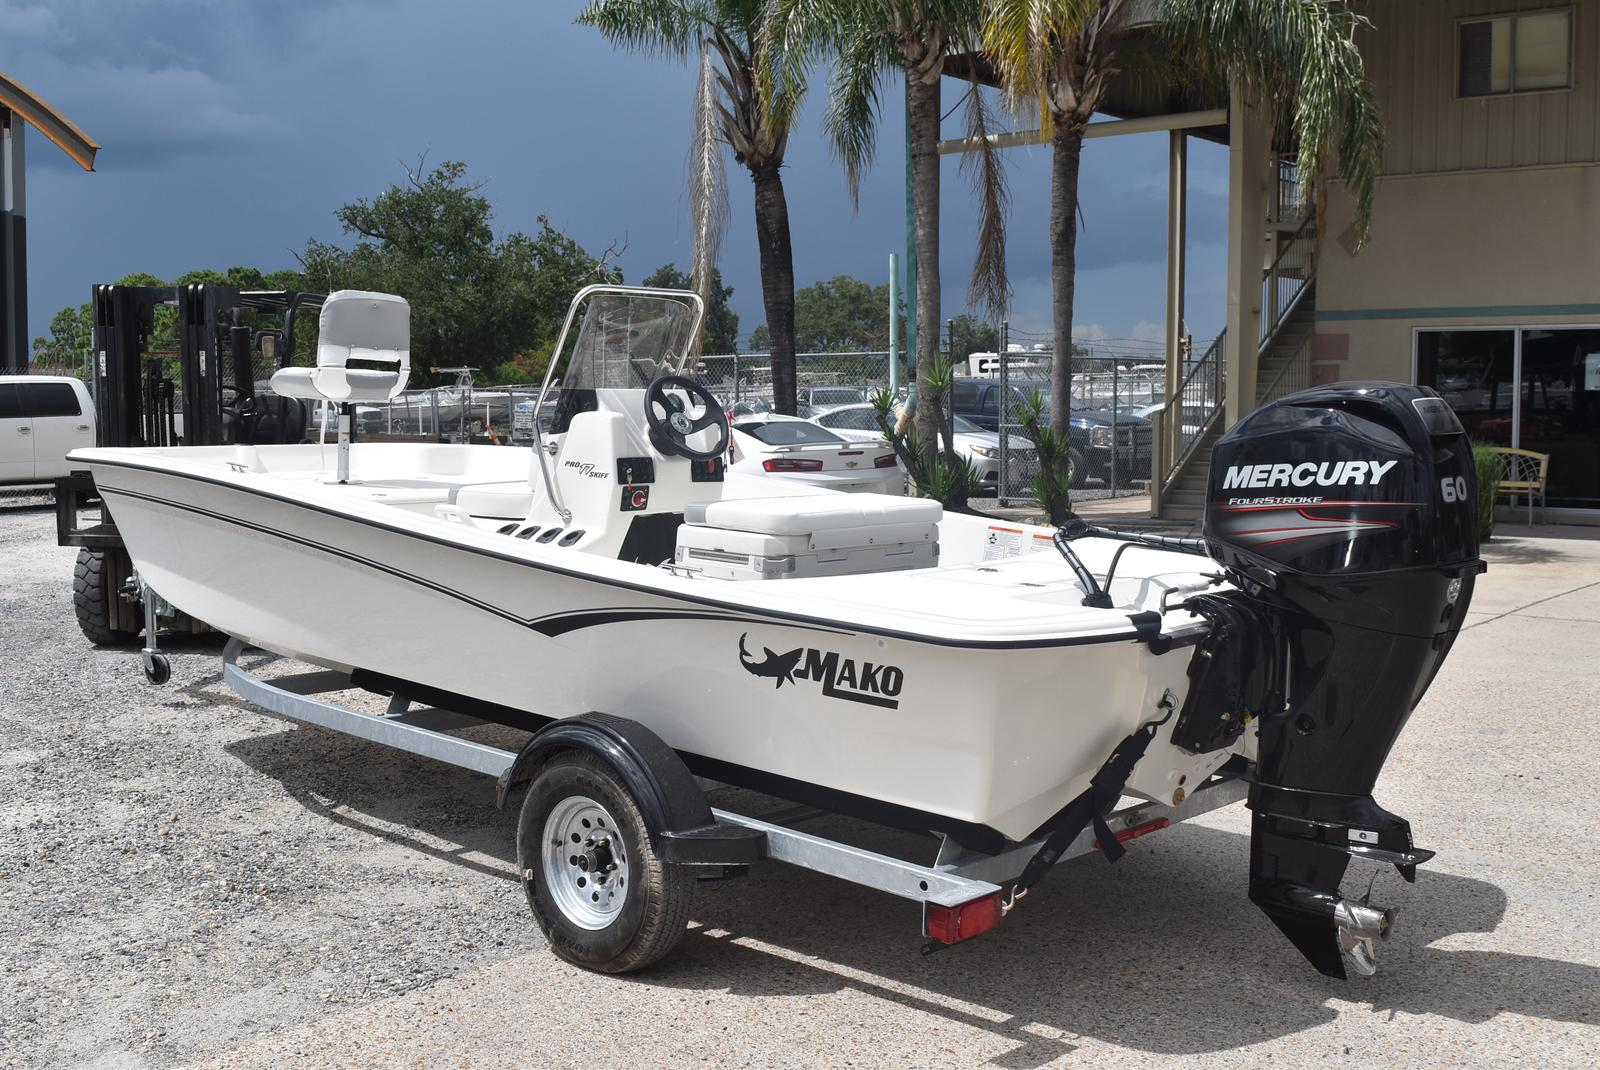 2020 Mako boat for sale, model of the boat is Pro Skiff 17, 75 ELPT & Image # 190 of 702